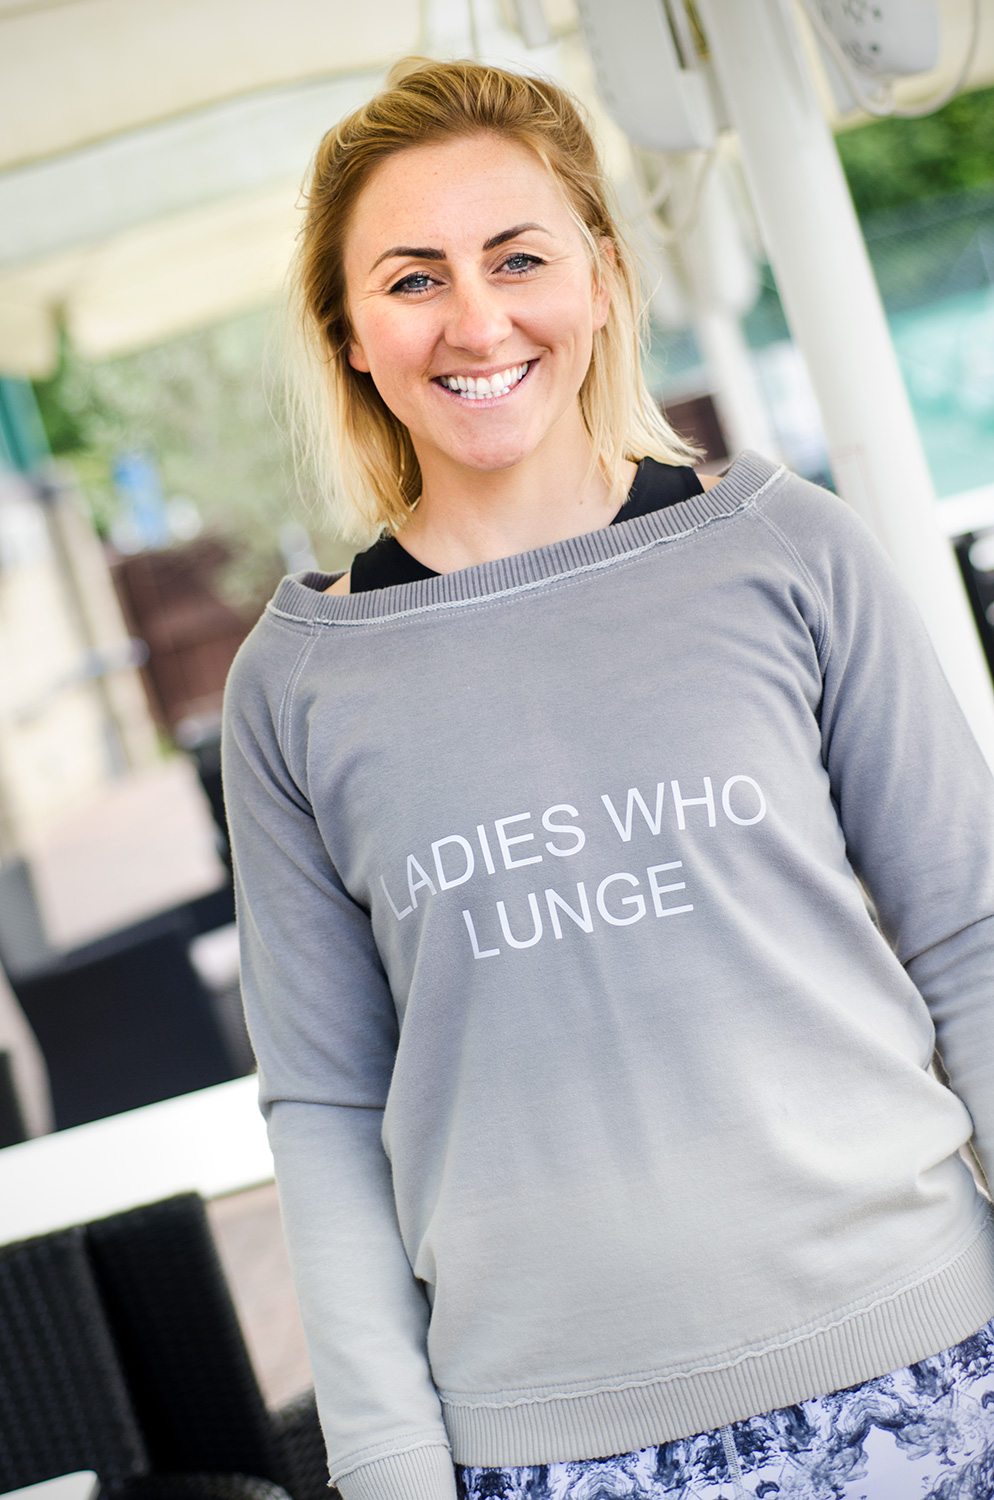 'Ladies Who Lunge' Sweatshirt